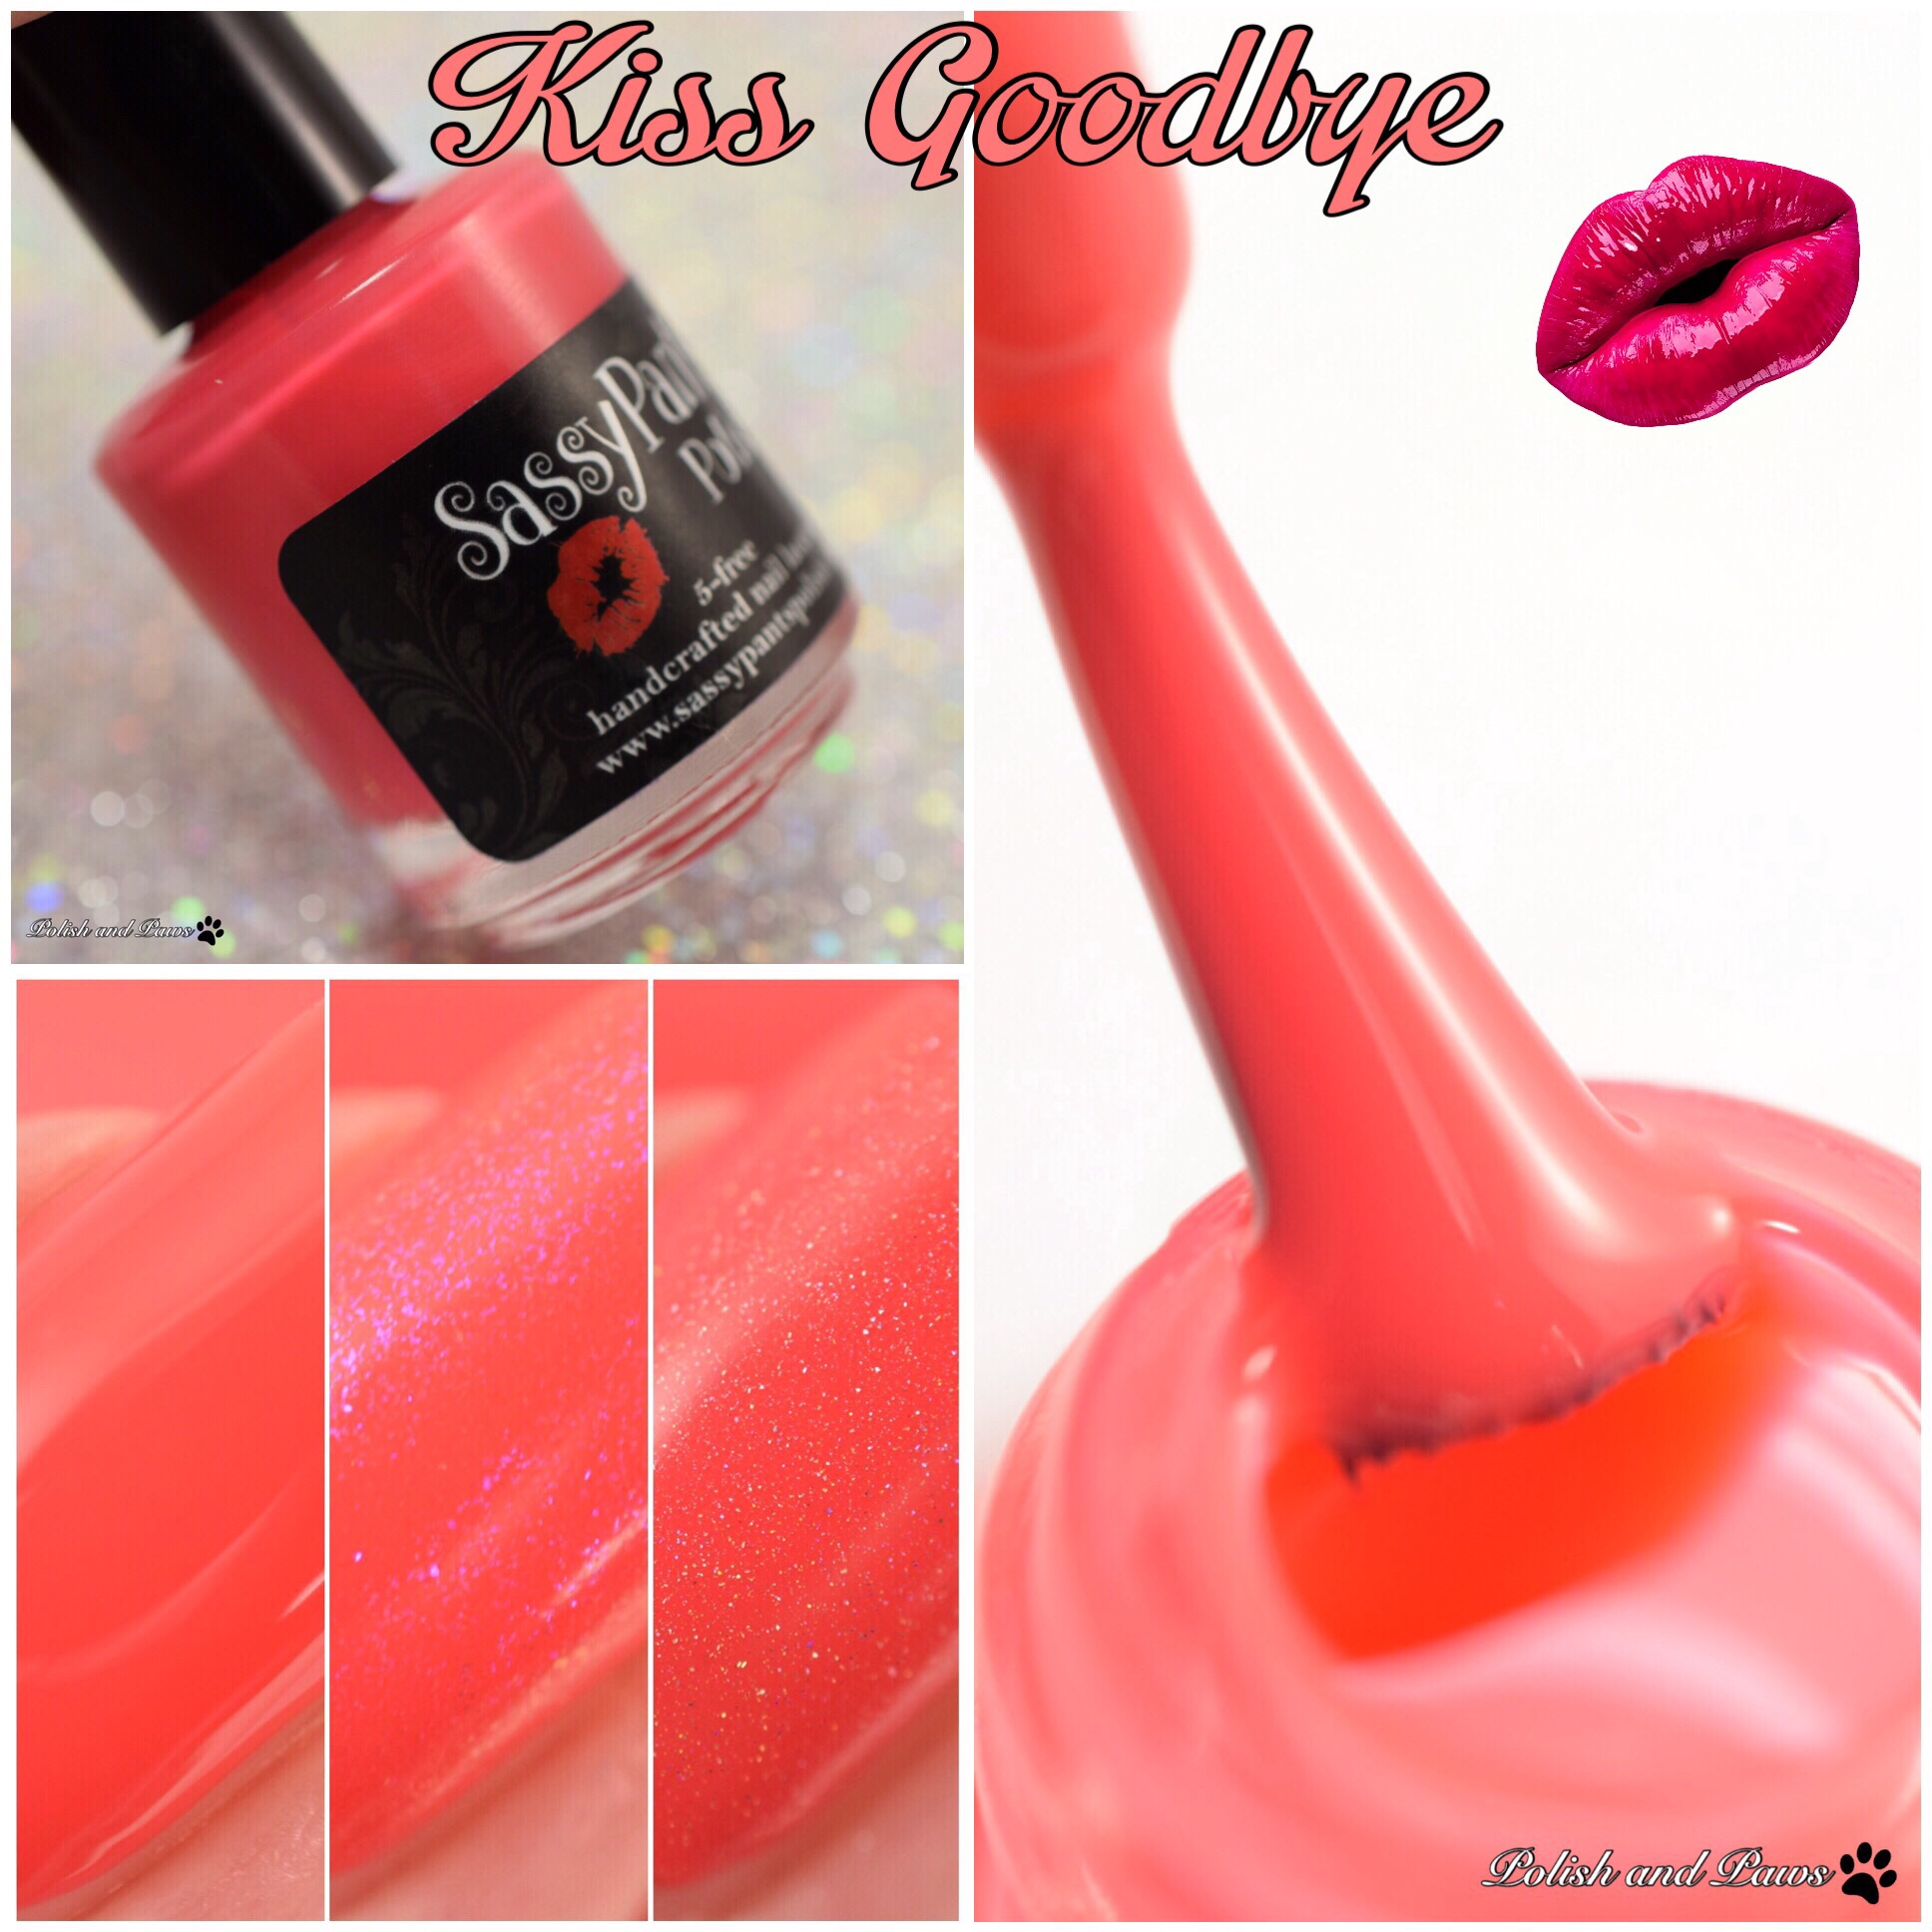 Sassy Pants Polish Kiss Goodbye